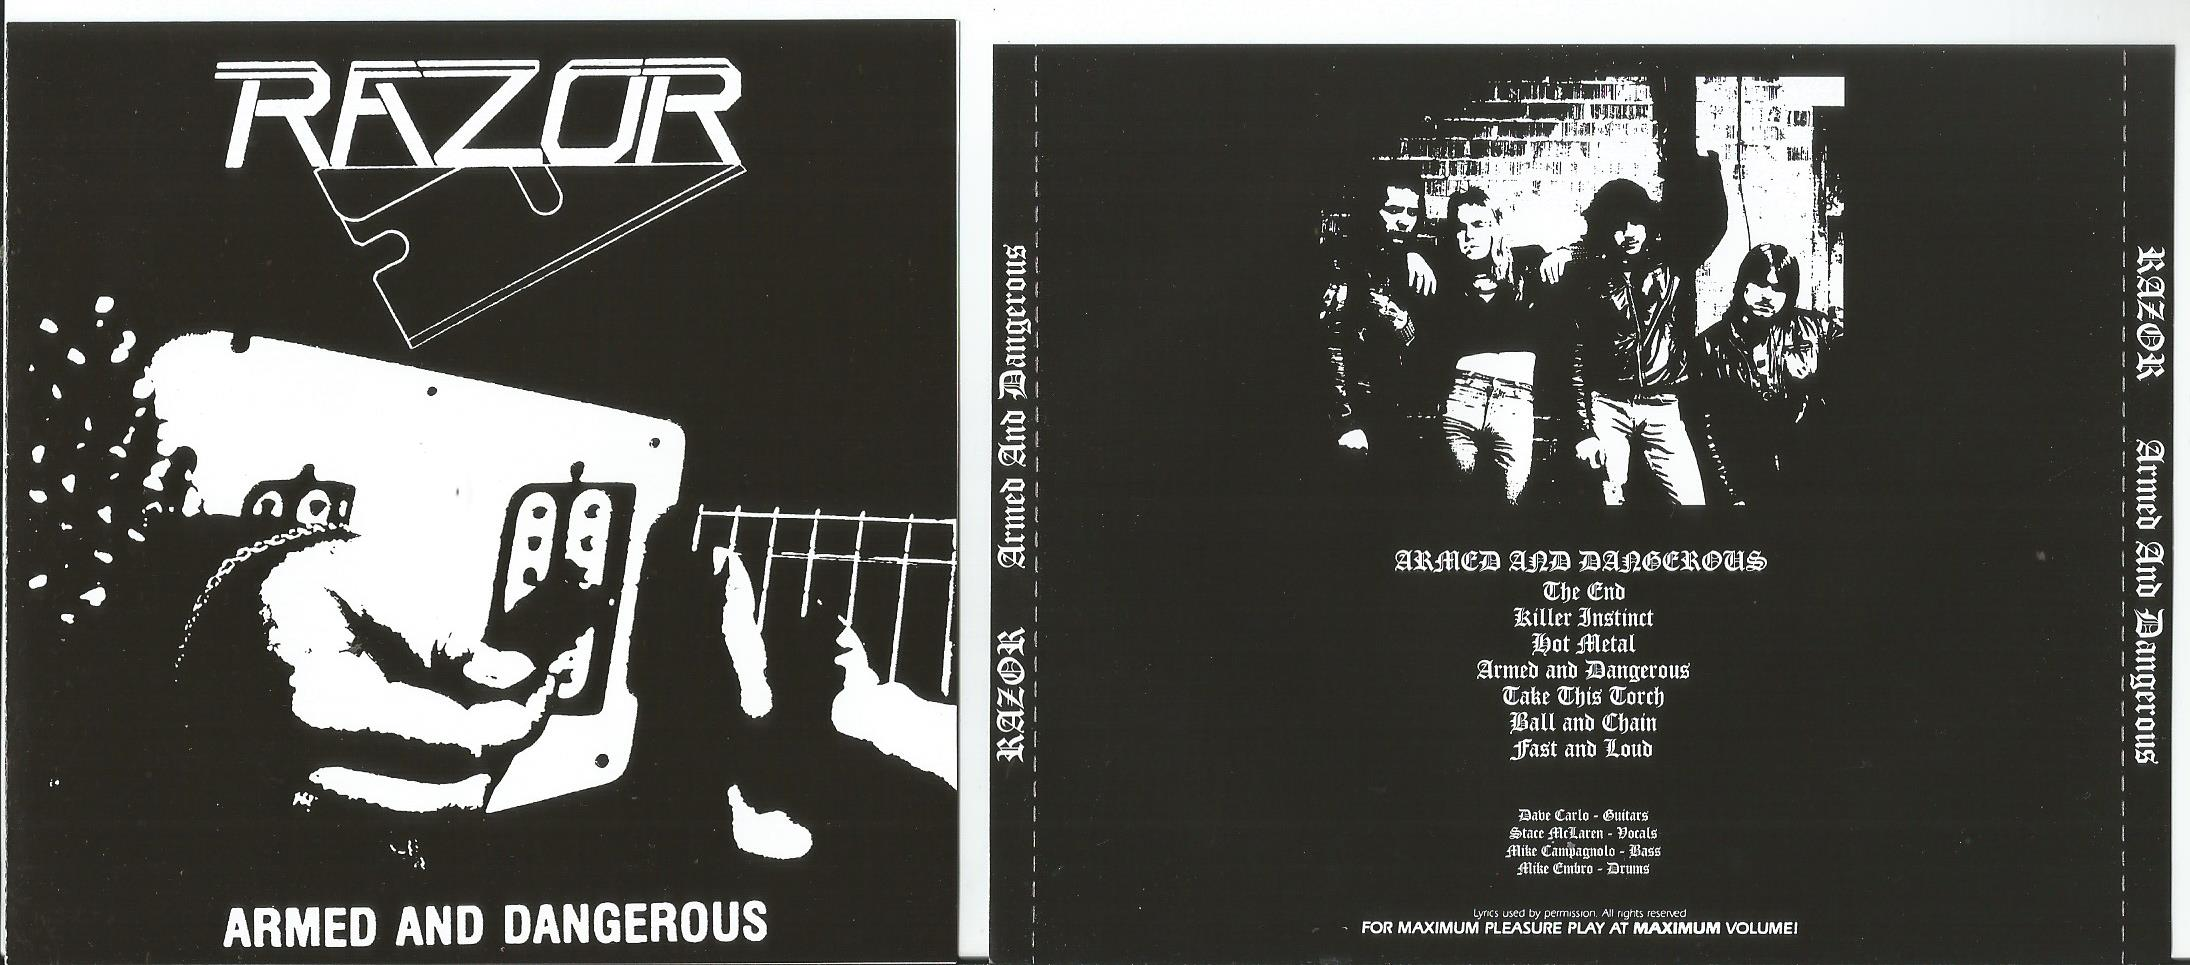 RAZOR Armed and Dangerous (booklet with lyrics)